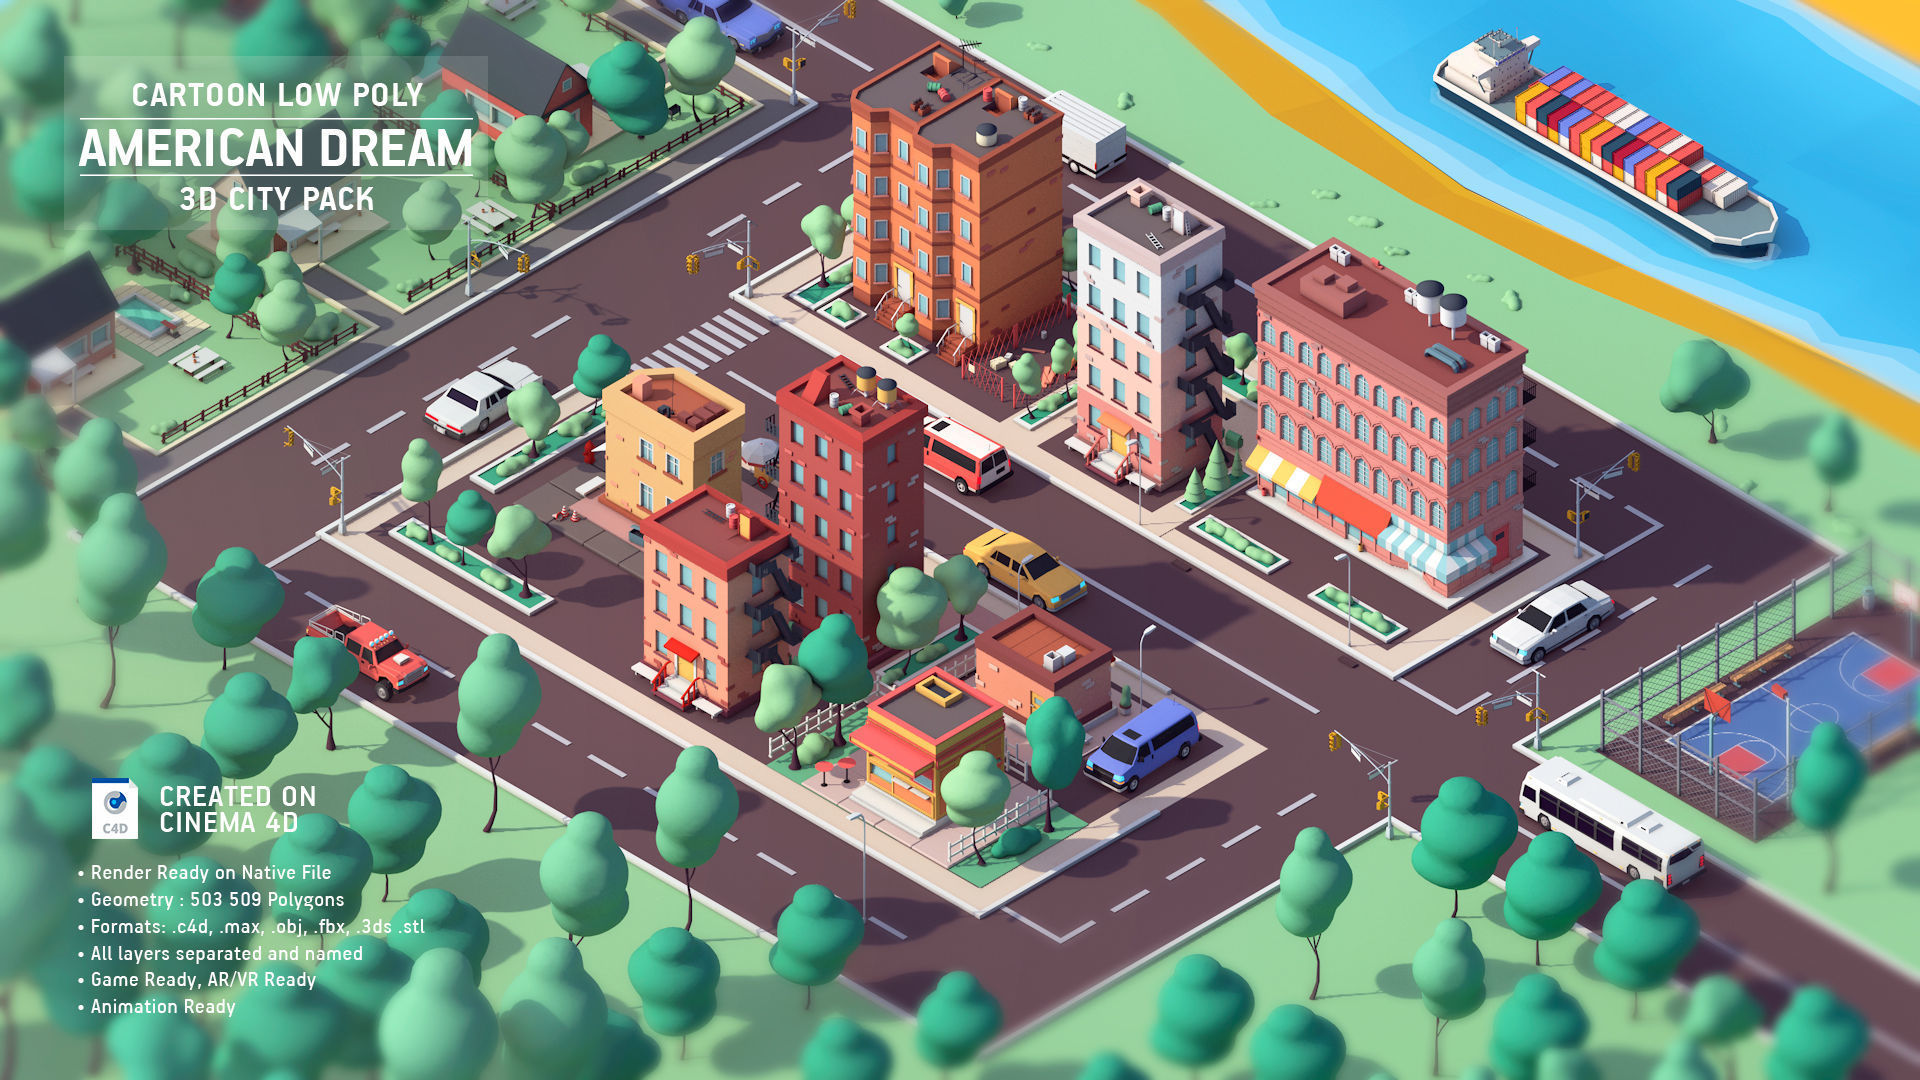 Cartoon Low Poly American Dream City Pack | 3D model